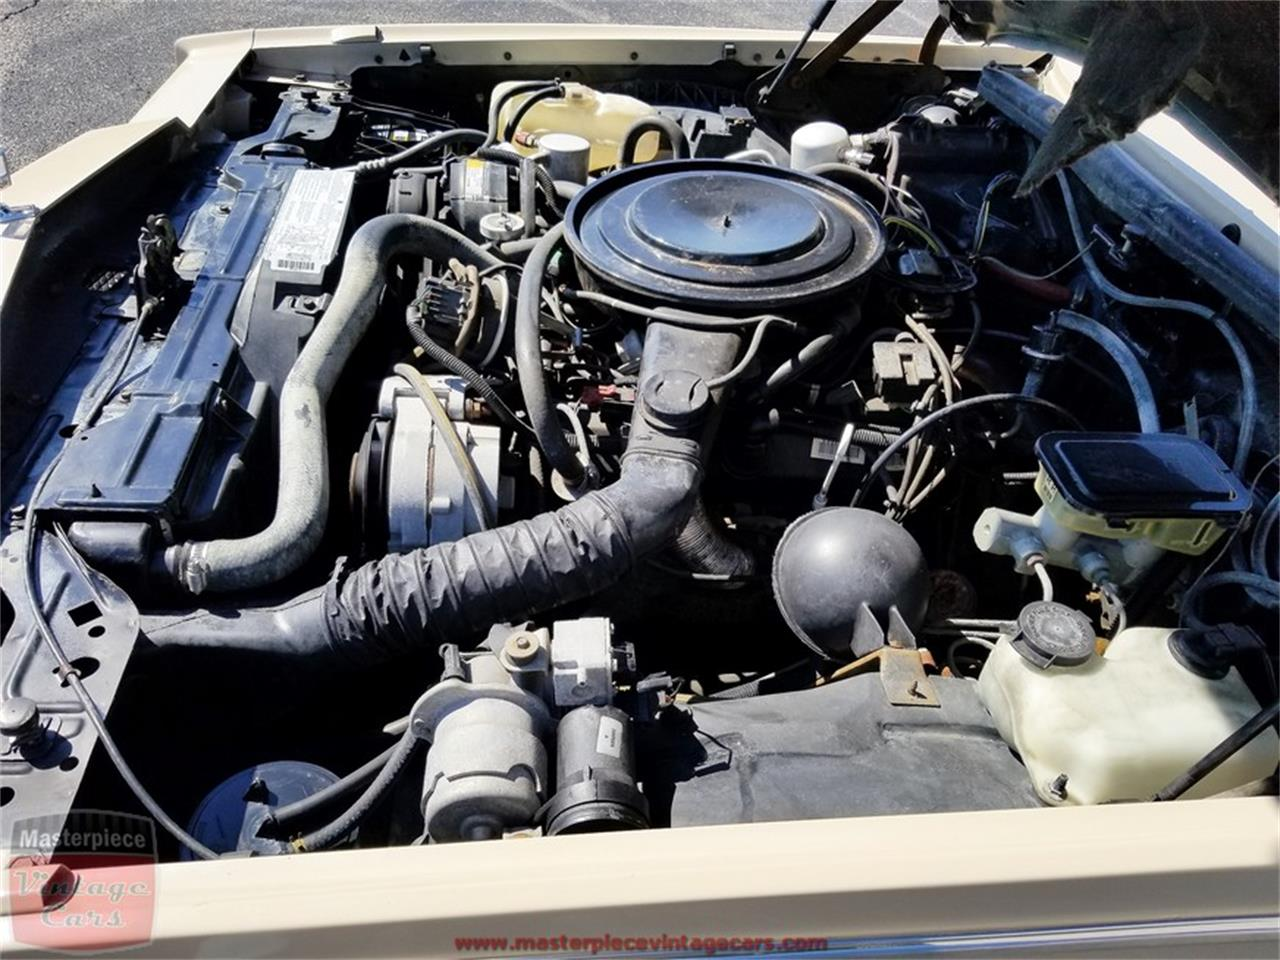 Large Picture of '85 Oldsmobile Toronado - $5,950.00 Offered by Masterpiece Vintage Cars - Q4ZA